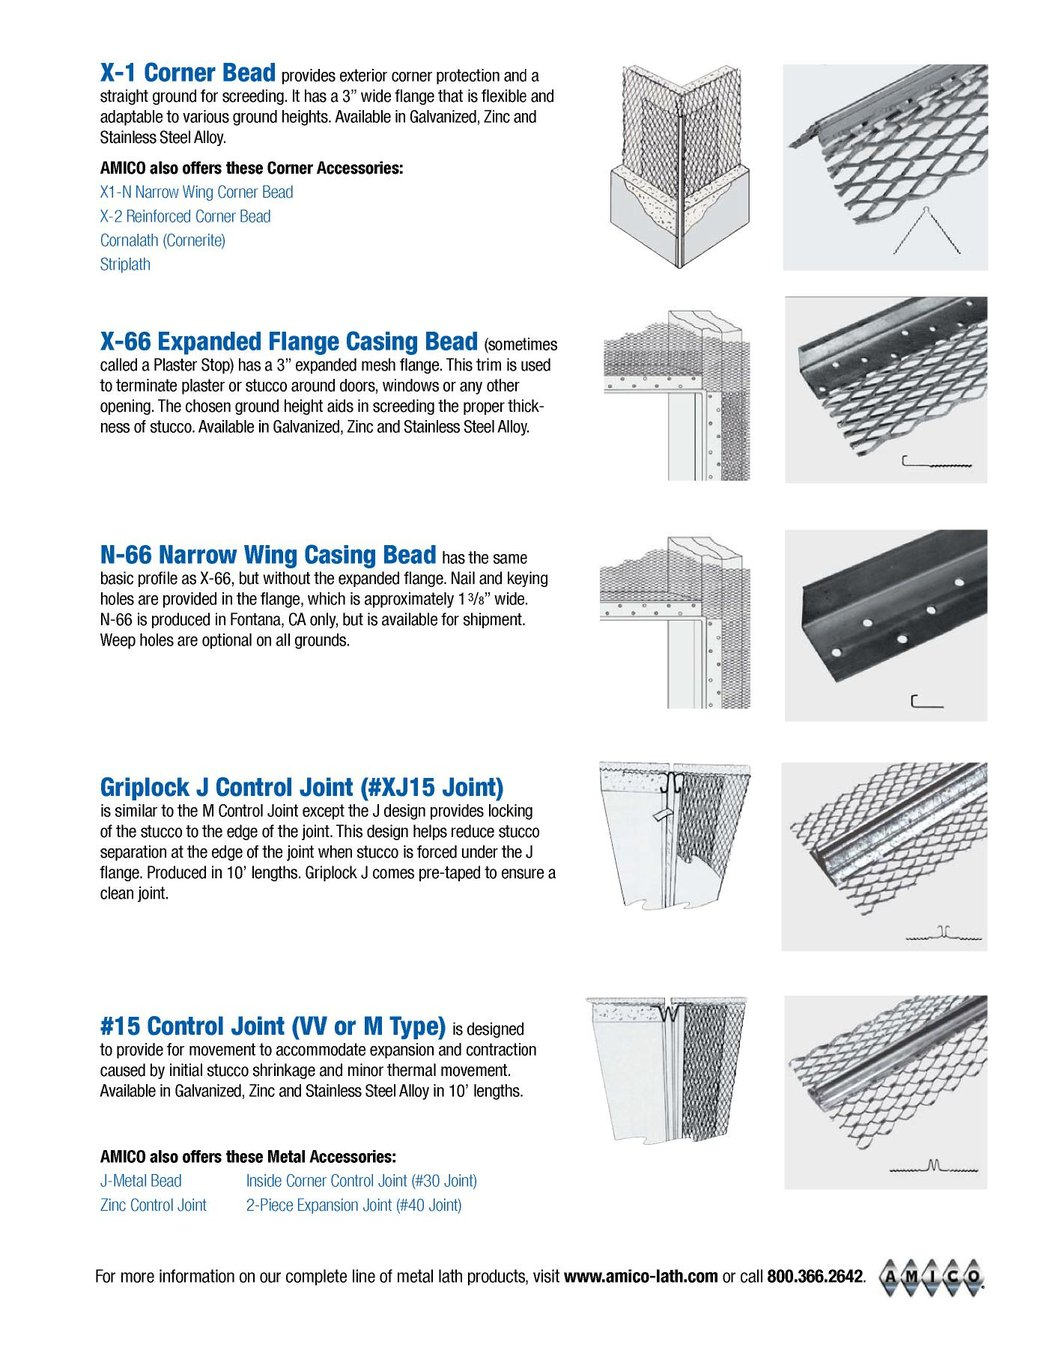 AWCI's Member Products Catalog 2011